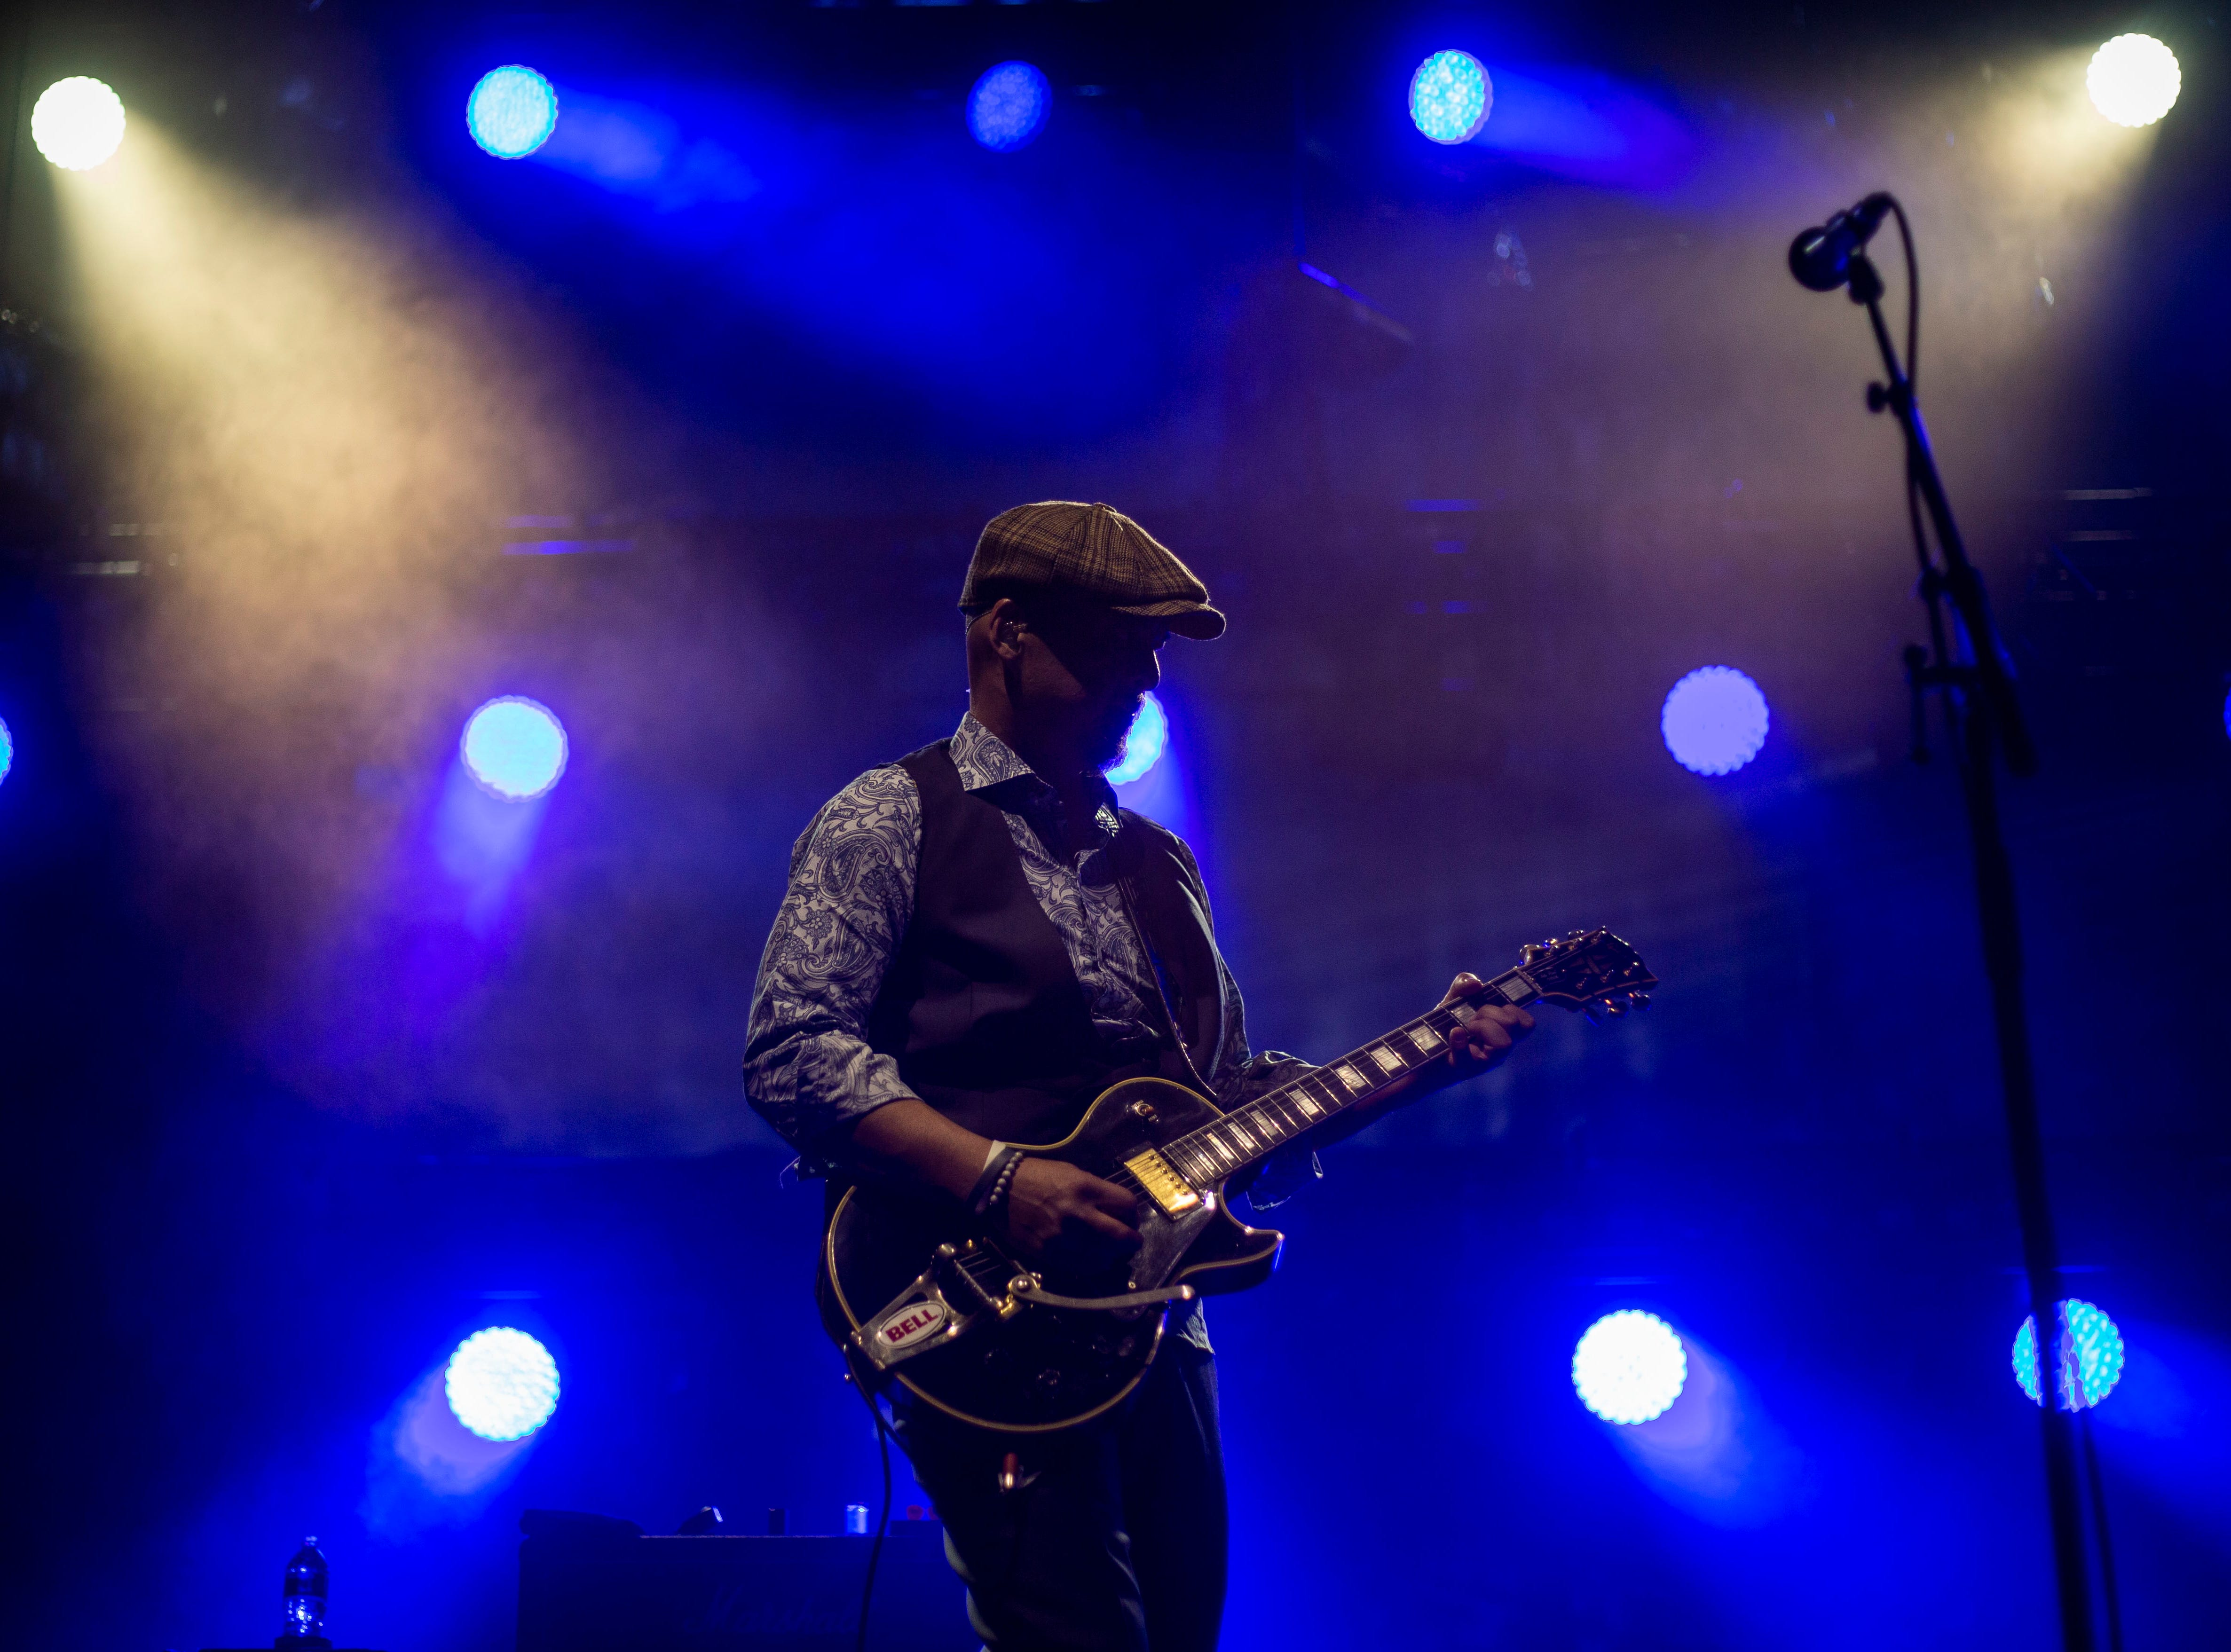 Joey Santiago, guitarist in The Pixies, performs during the first show of the  Weezer x Pixies 2019 tour at the KFC Yum! Center in downtown Louisville, Ky. on Friday, March 8, 2019.